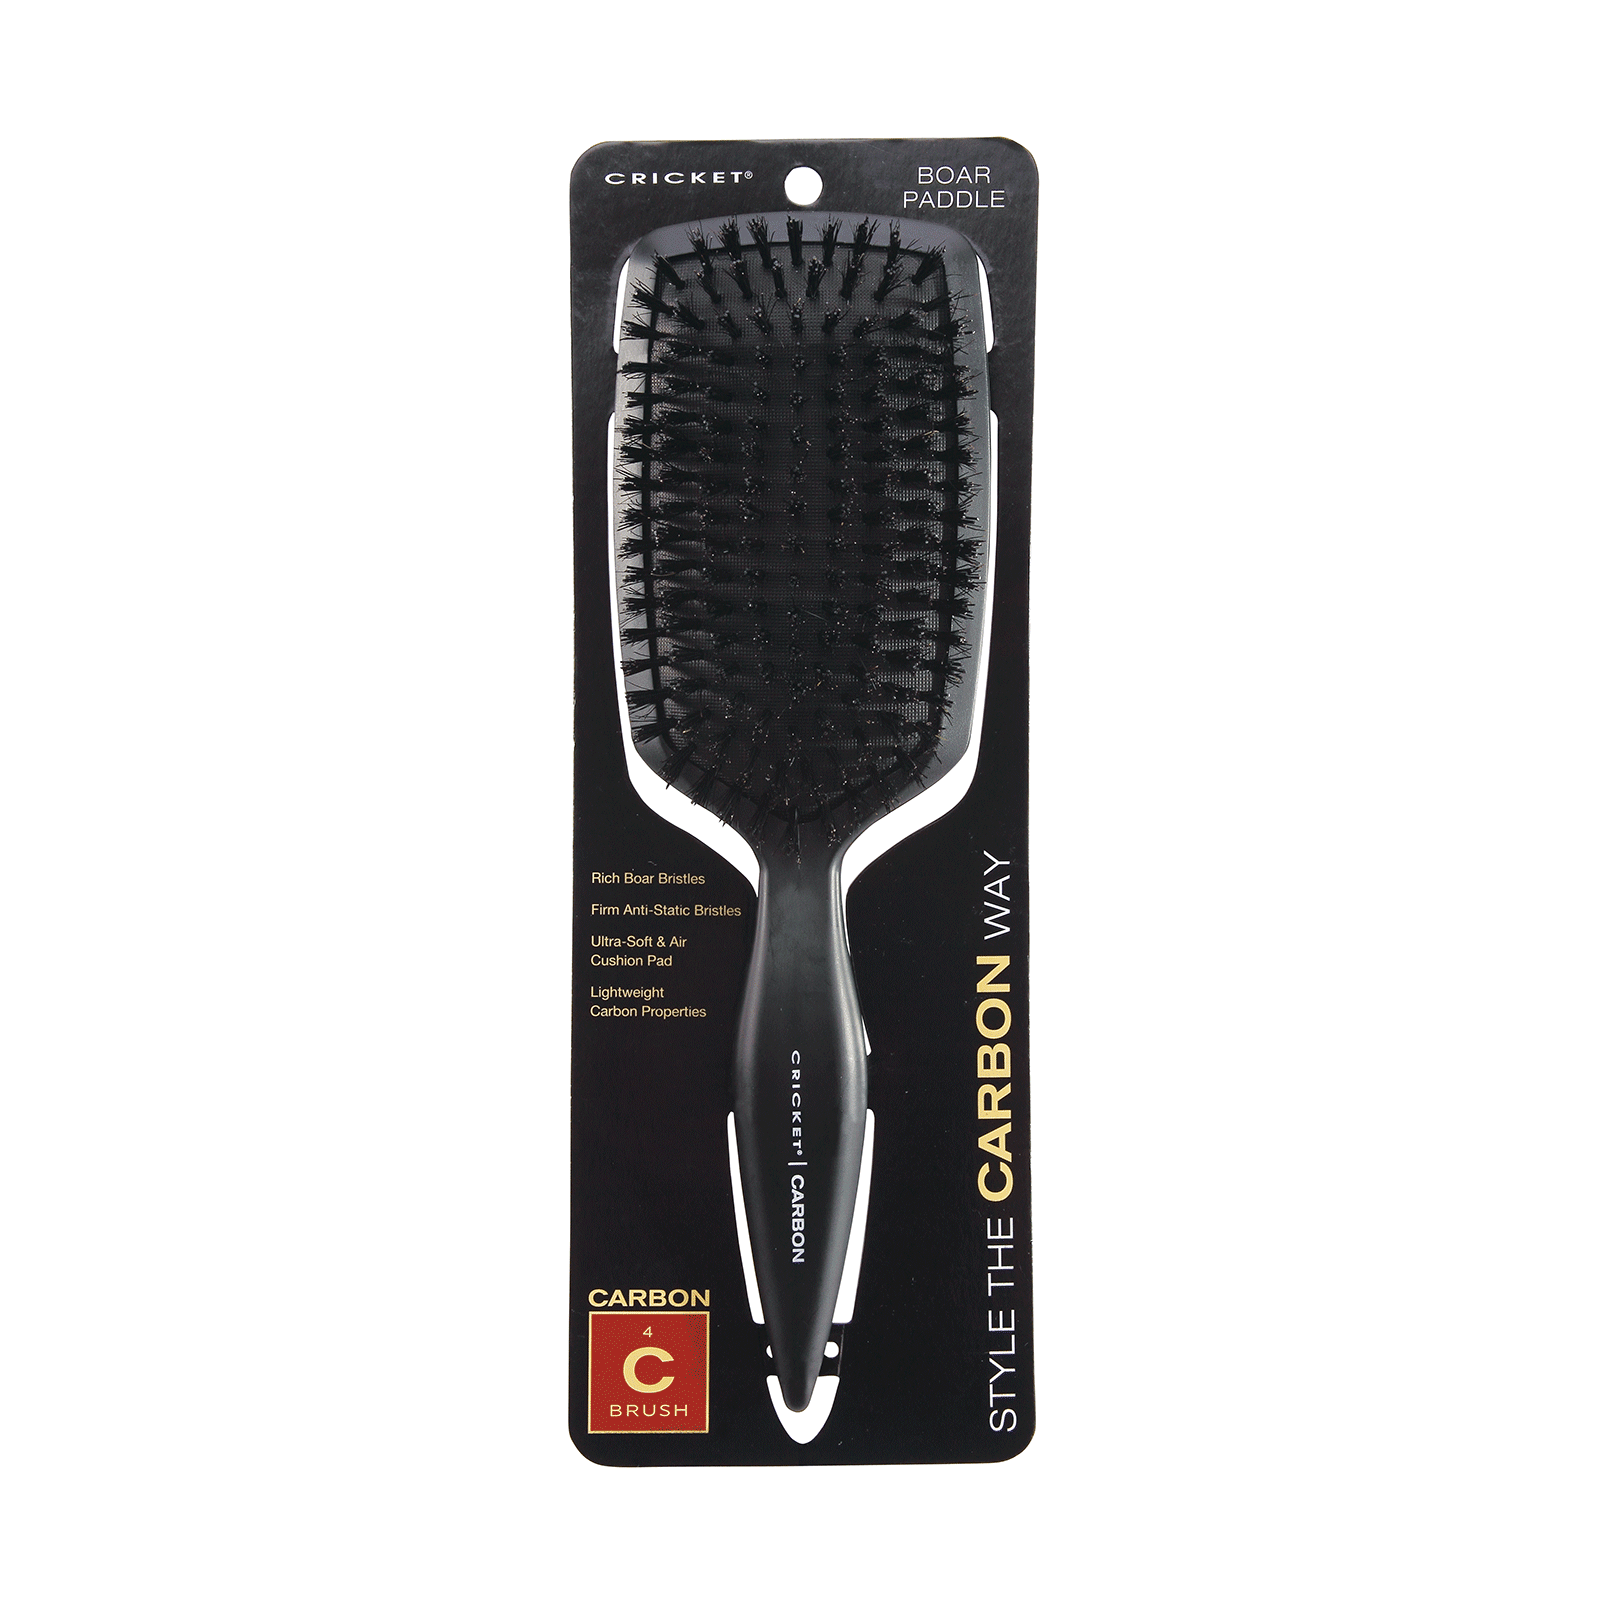 Carbon Boar Paddle Brush